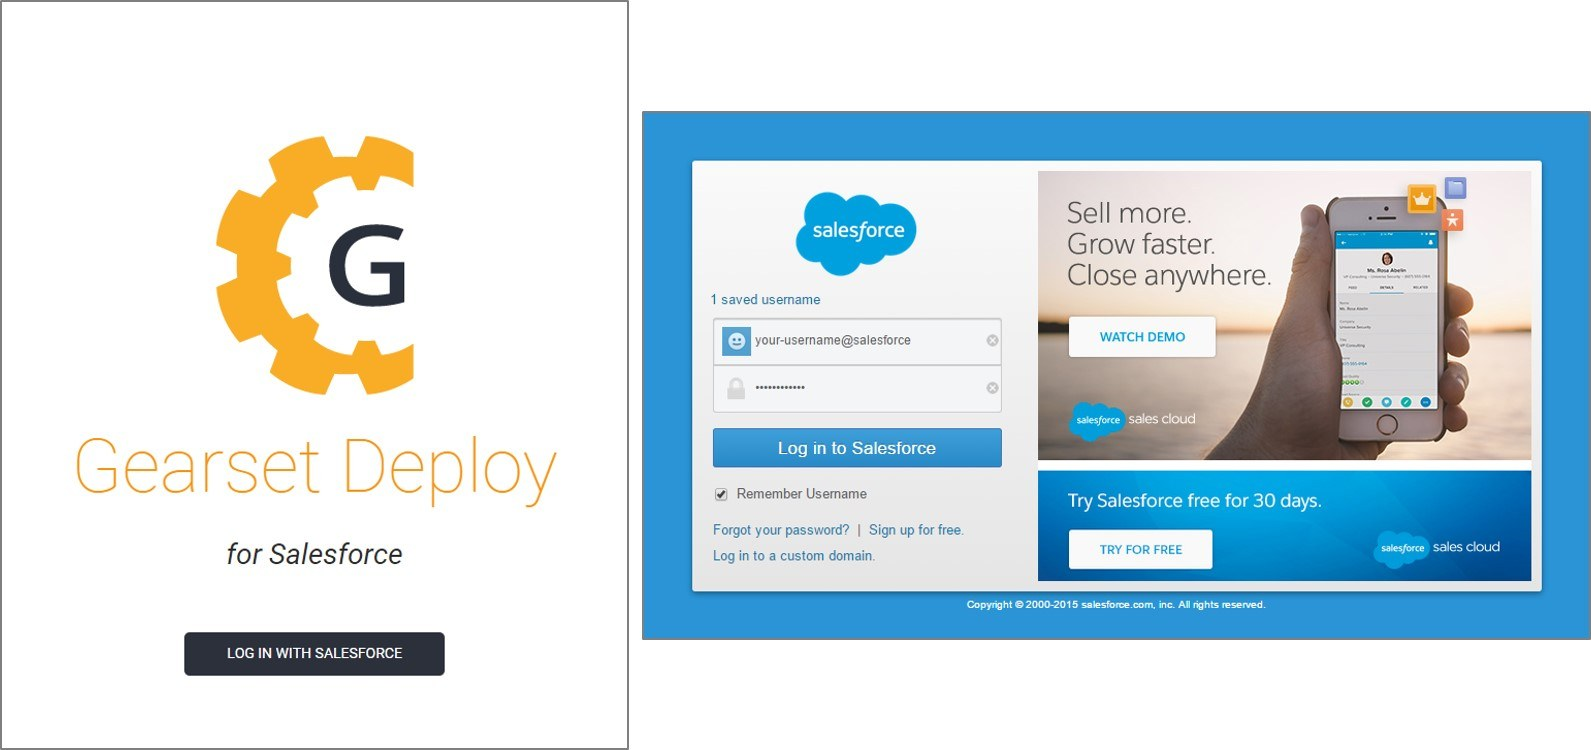 Log into the app with your Salesforce credentials